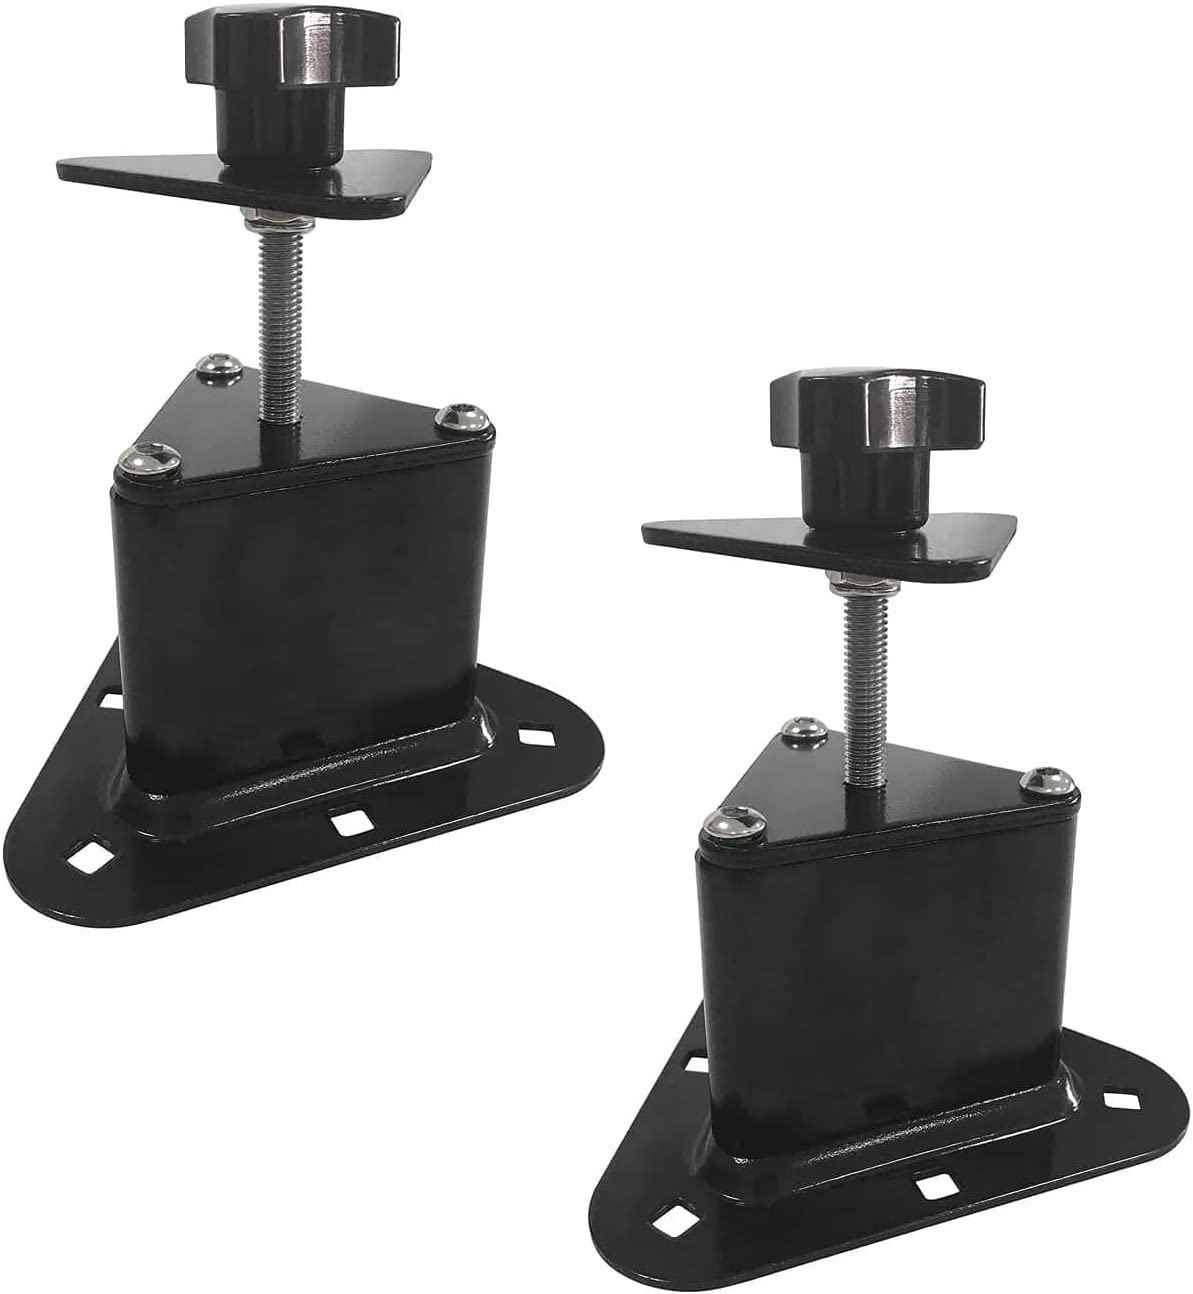 Beasteel Fuel Tank Beauty Max 57% OFF products Mounting Bracket Gasoline Brac Container Lock